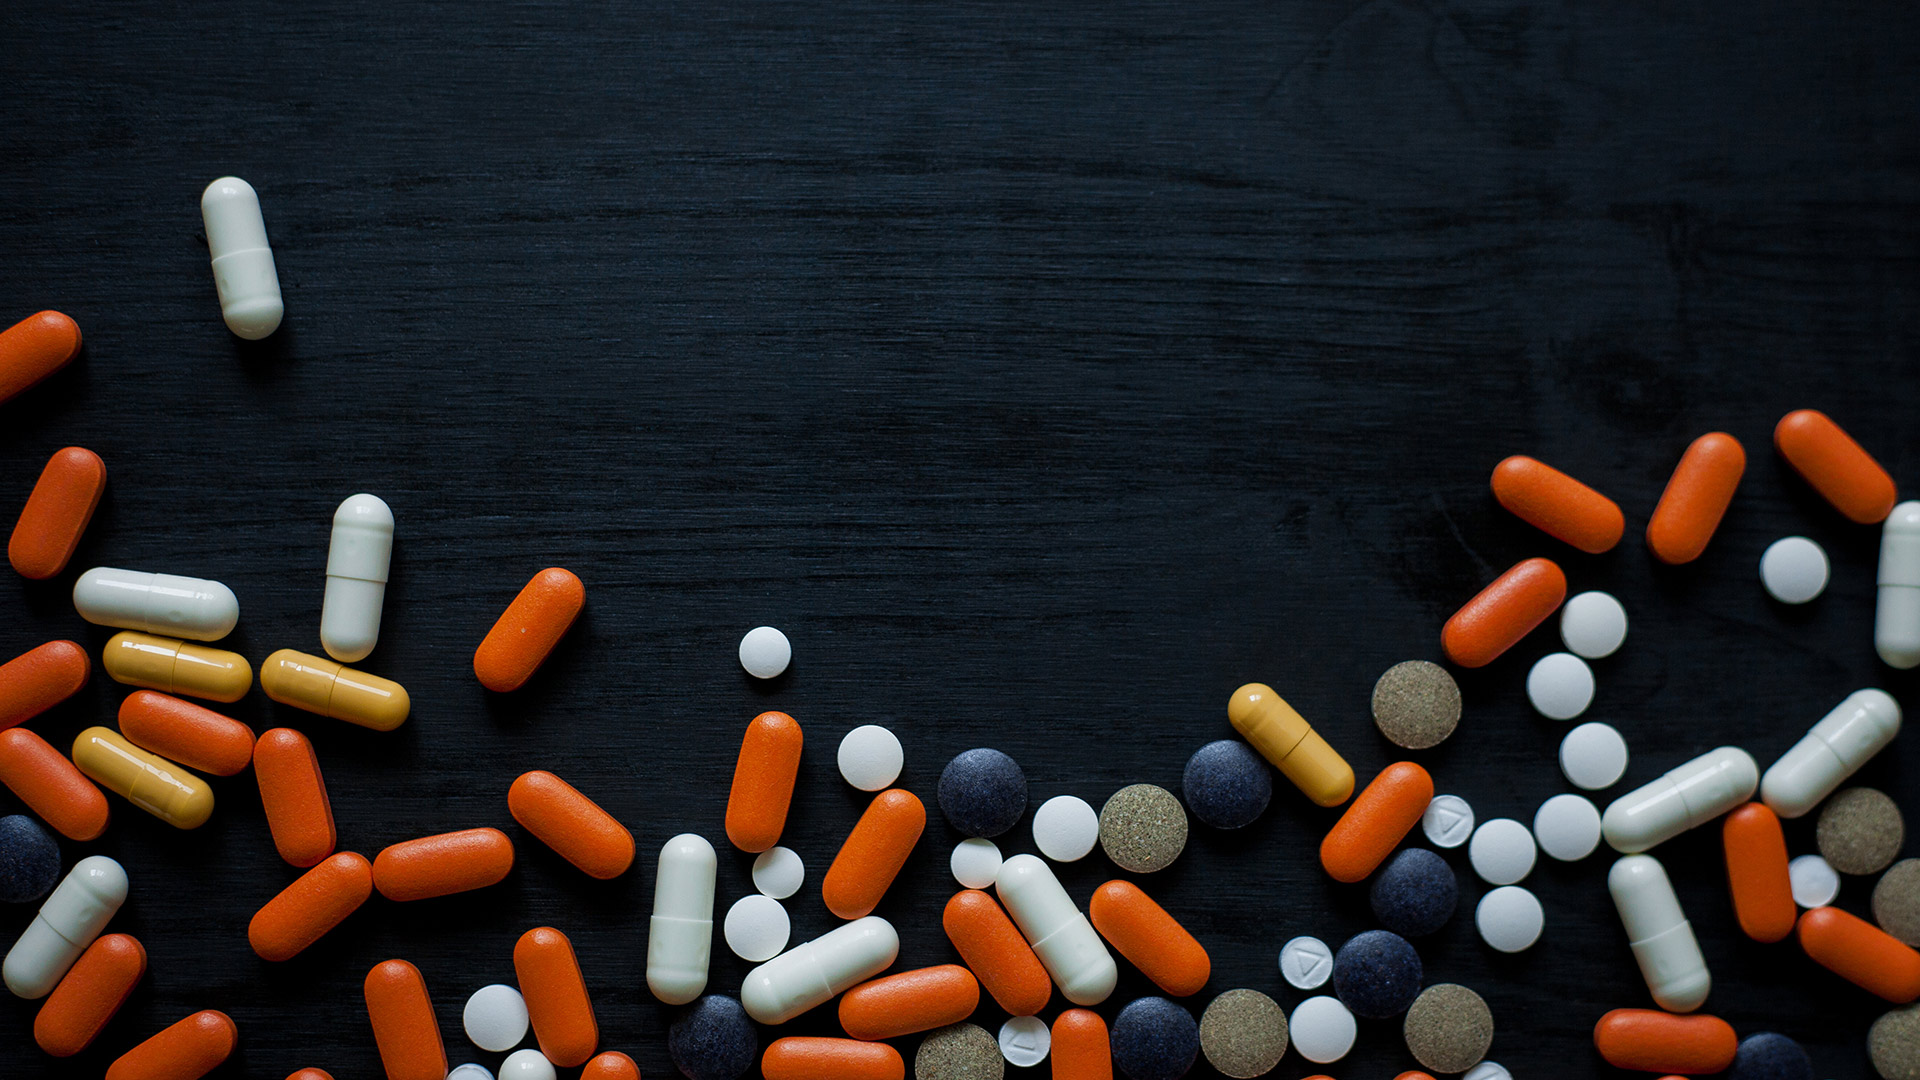 Pharmaceutical drugs on a table